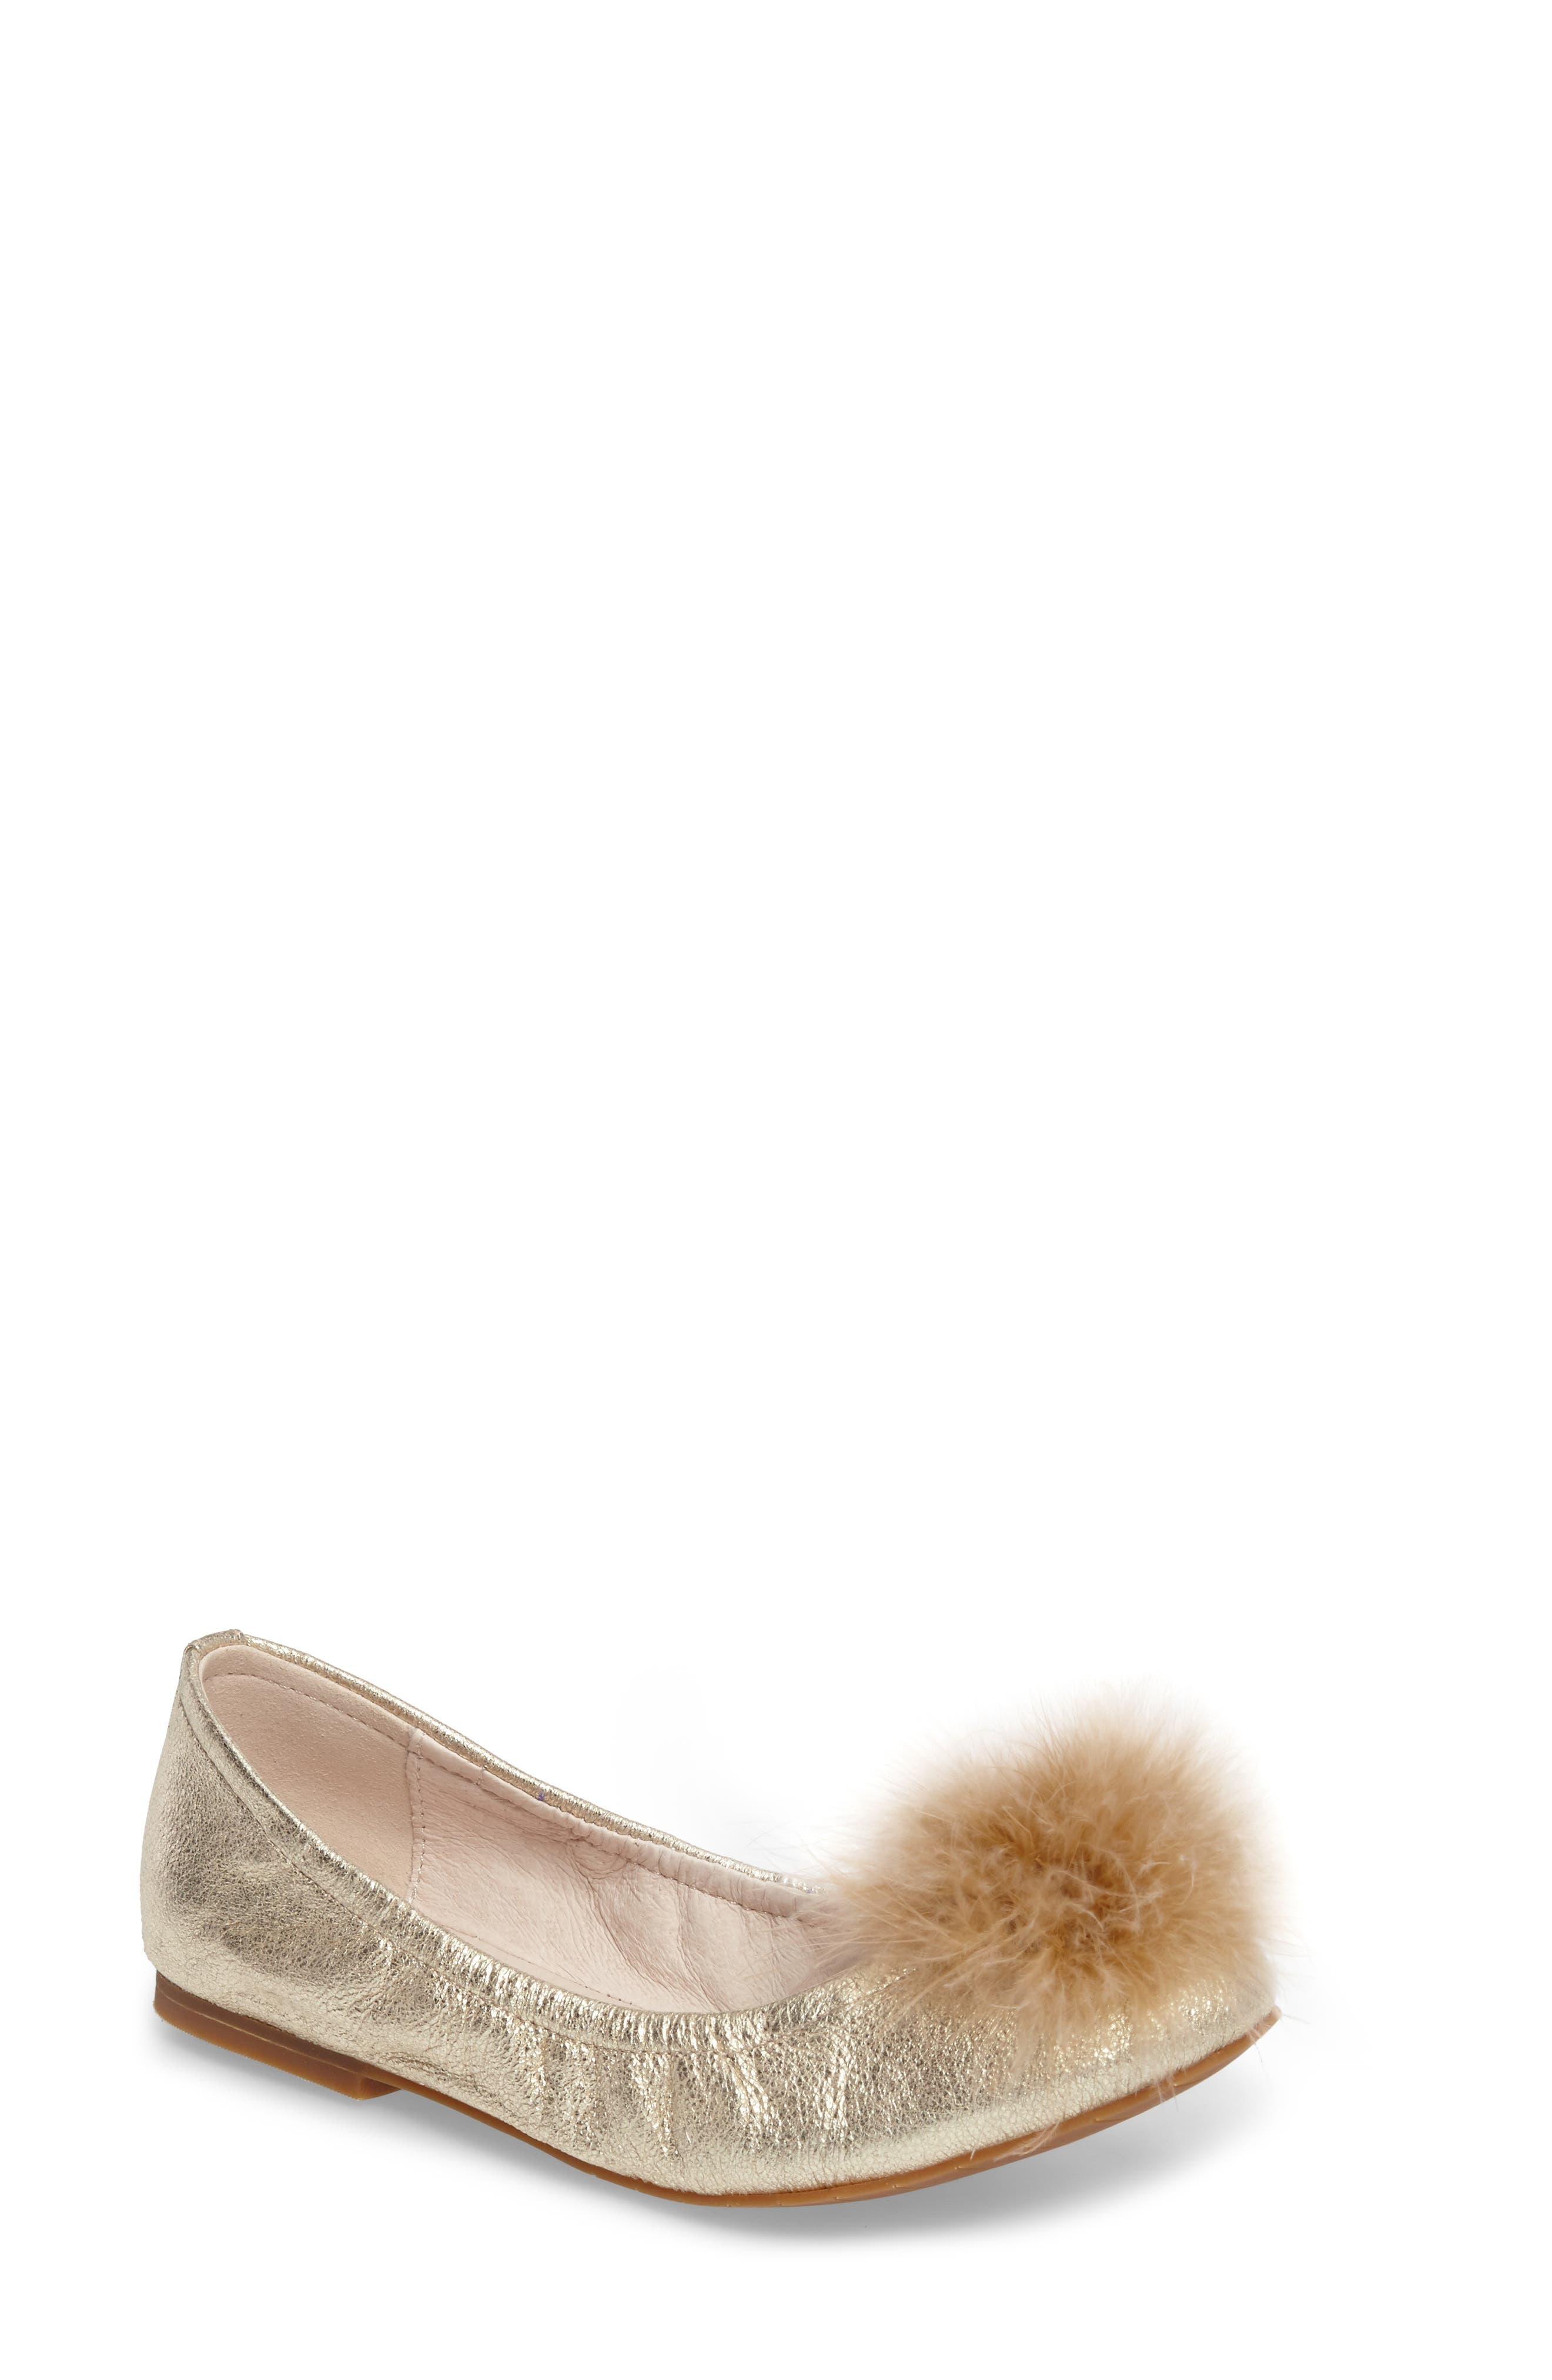 Alternate Image 1 Selected - Kenneth Cole New York Priscella Ballet Flat (Women)